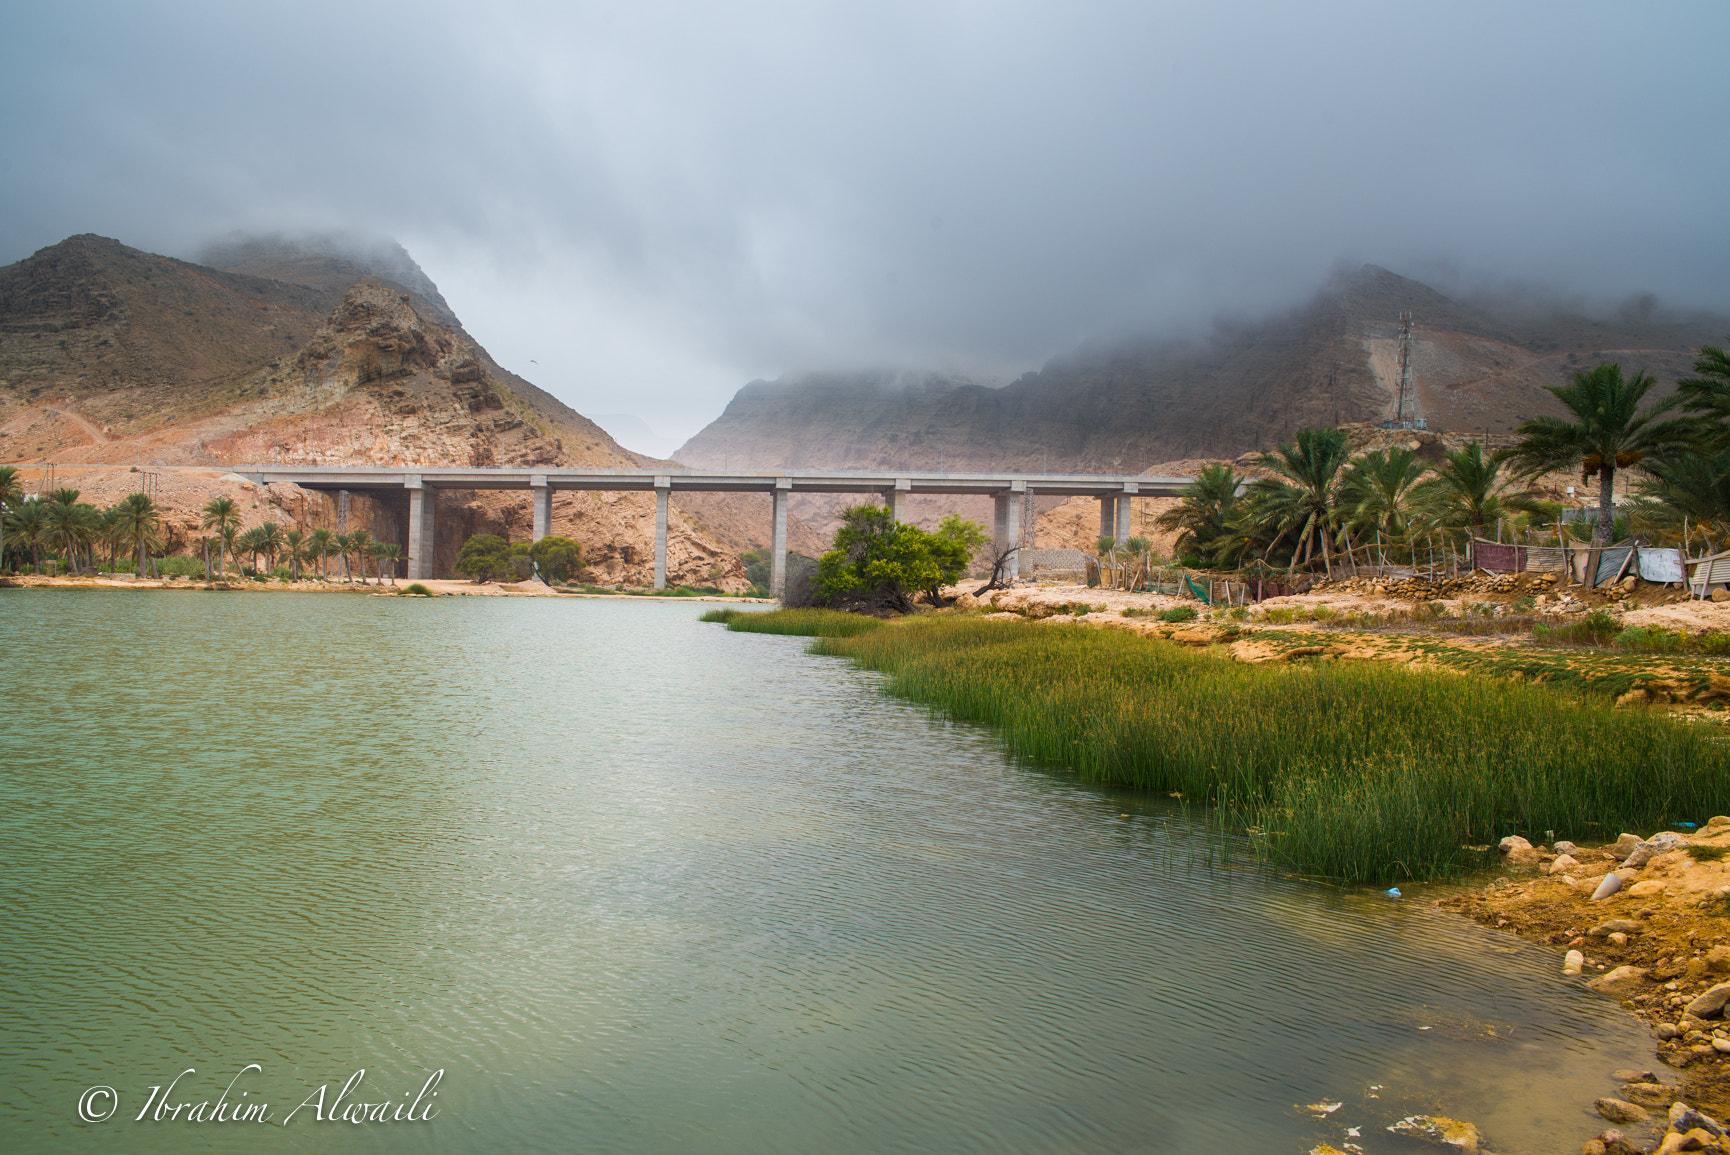 Photograph Wadi Tiwi - Oman by Ibrahim AlWaili on 500px